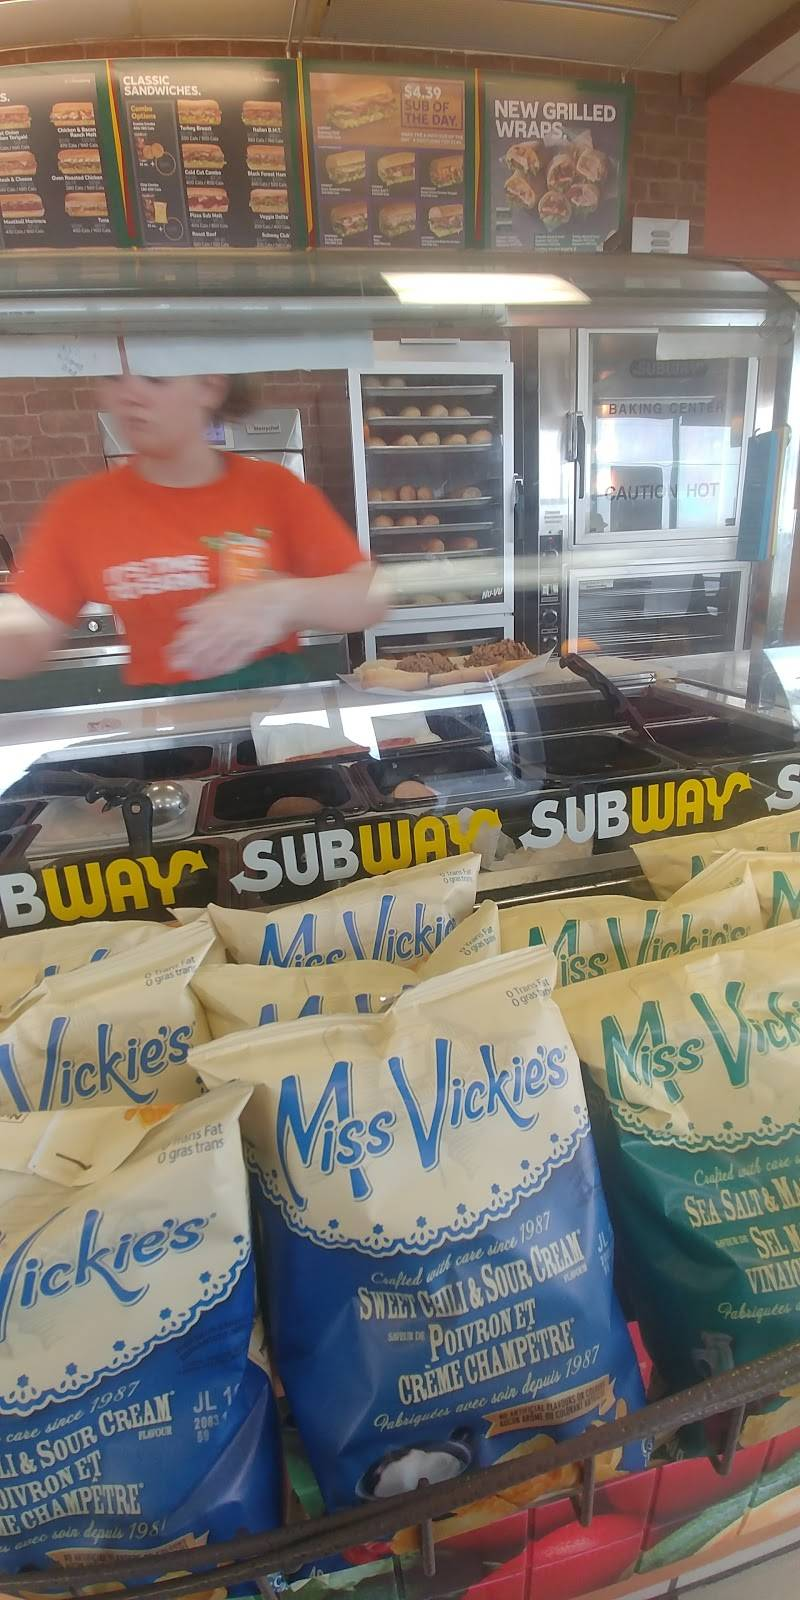 Subway | restaurant | 3313 ON-115, Newcastle, ON L1B 1L9, Canada | 9059874438 OR +1 905-987-4438